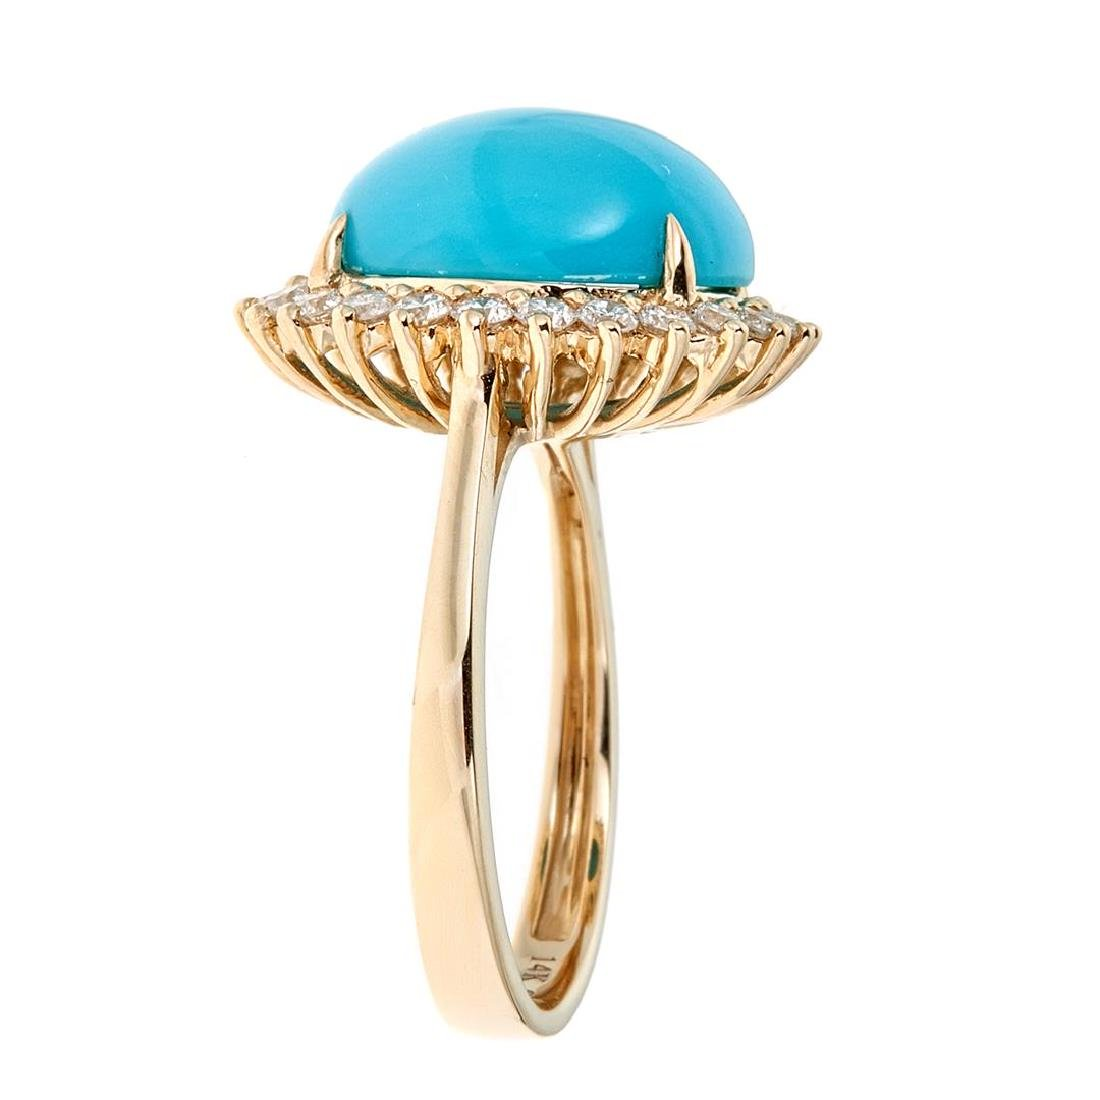 5.18 ctw Turquoise and Diamond Ring - 14KT Yellow Gold - 2